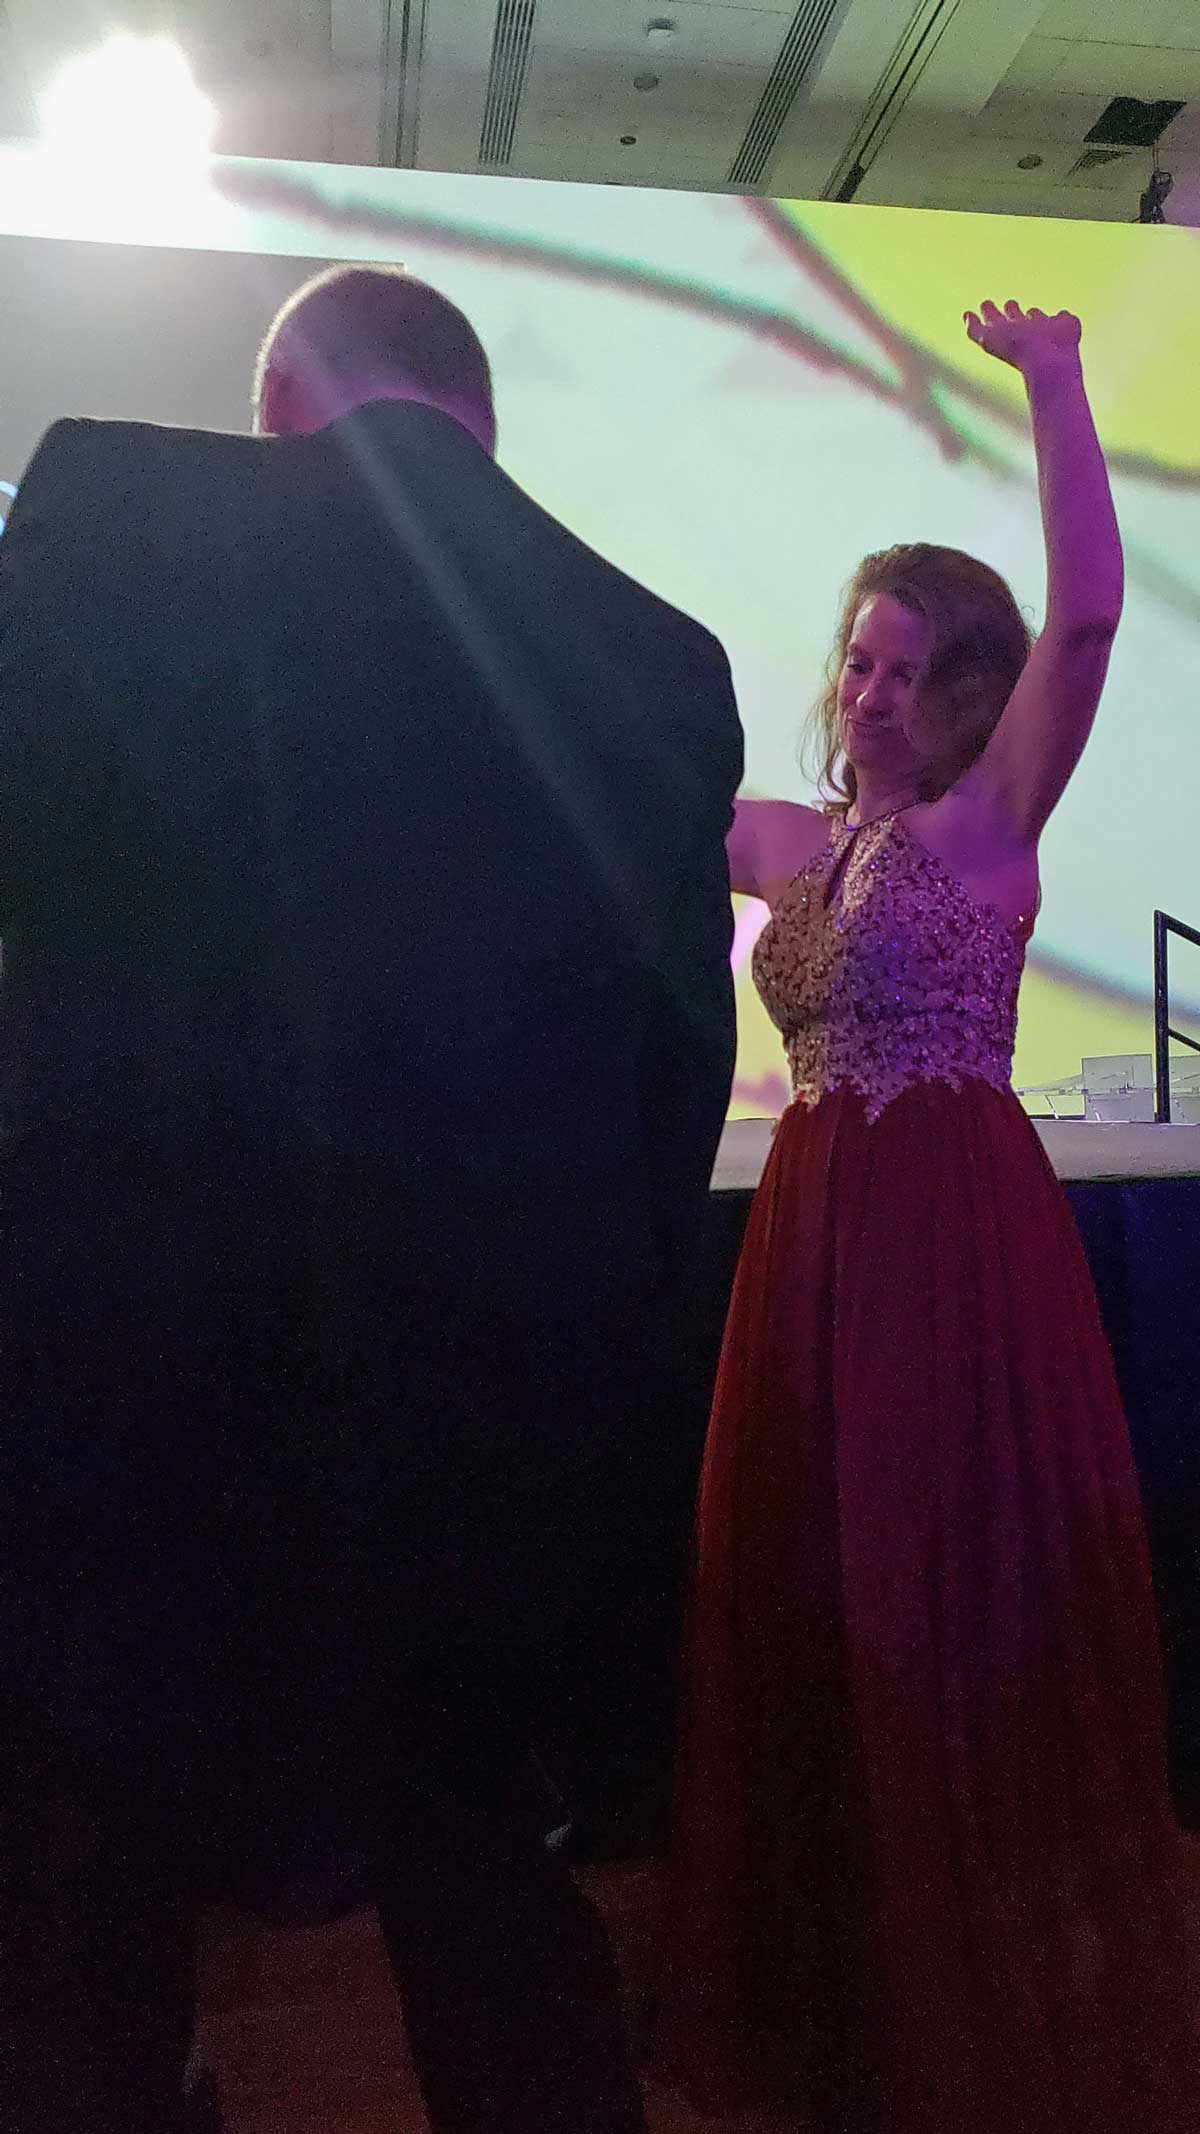 dancing at the gala